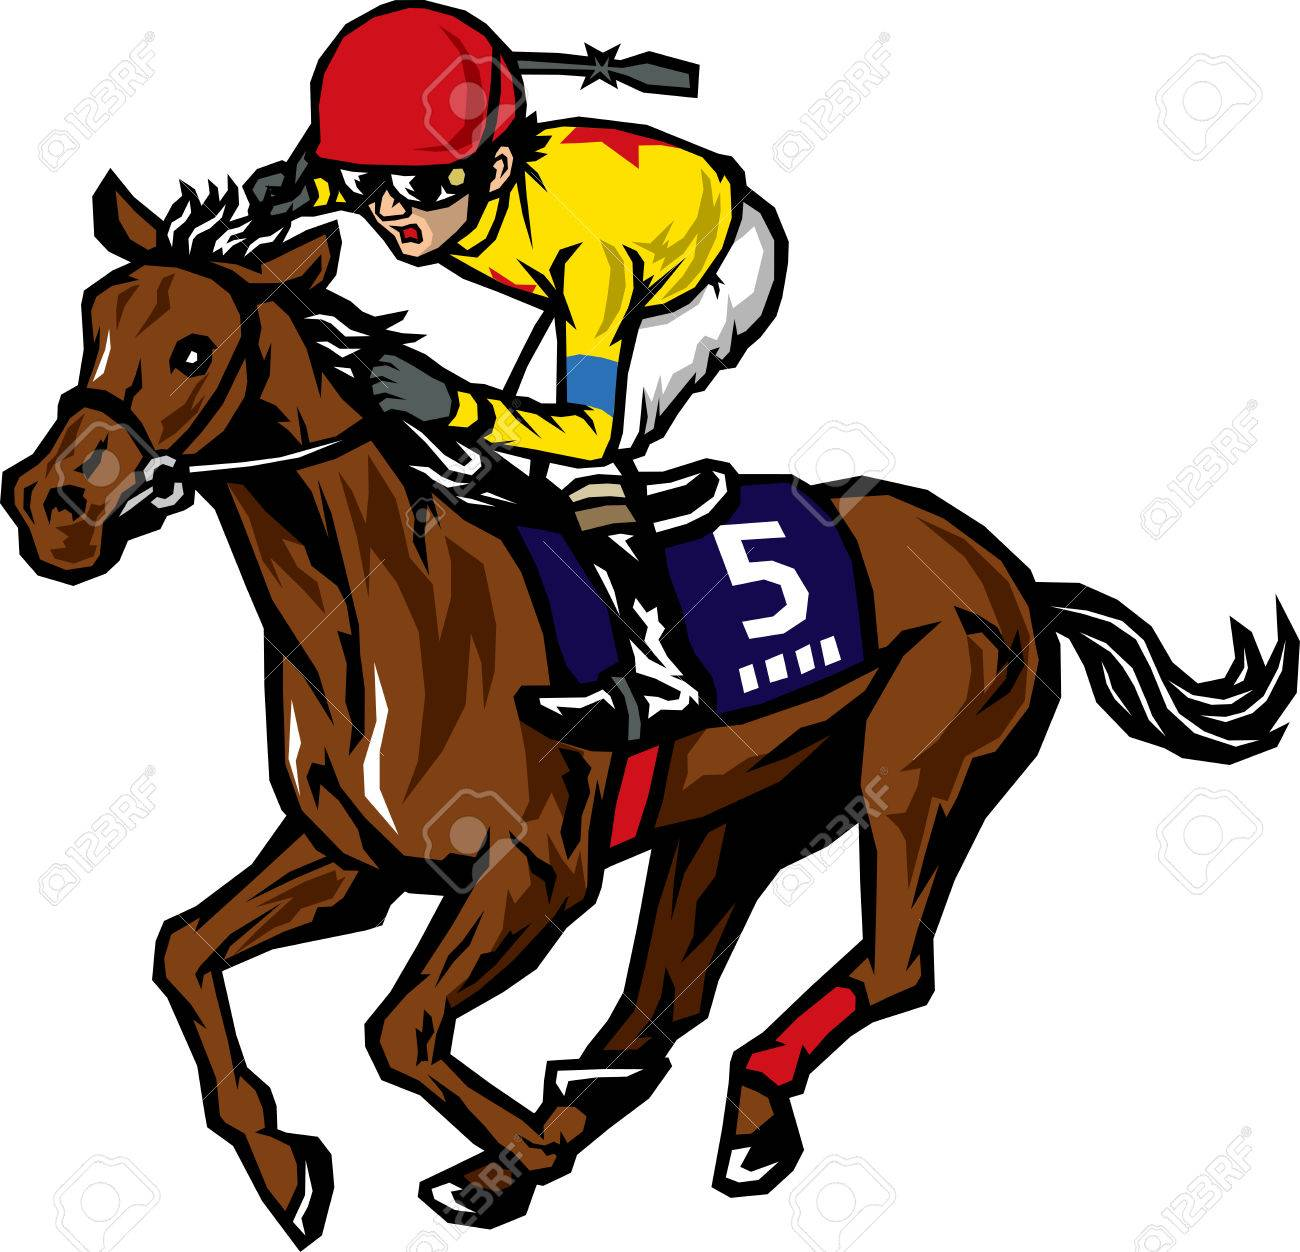 horse racing royalty free cliparts vectors and stock rh 123rf com horse racing clip art free horse racing clip art free download